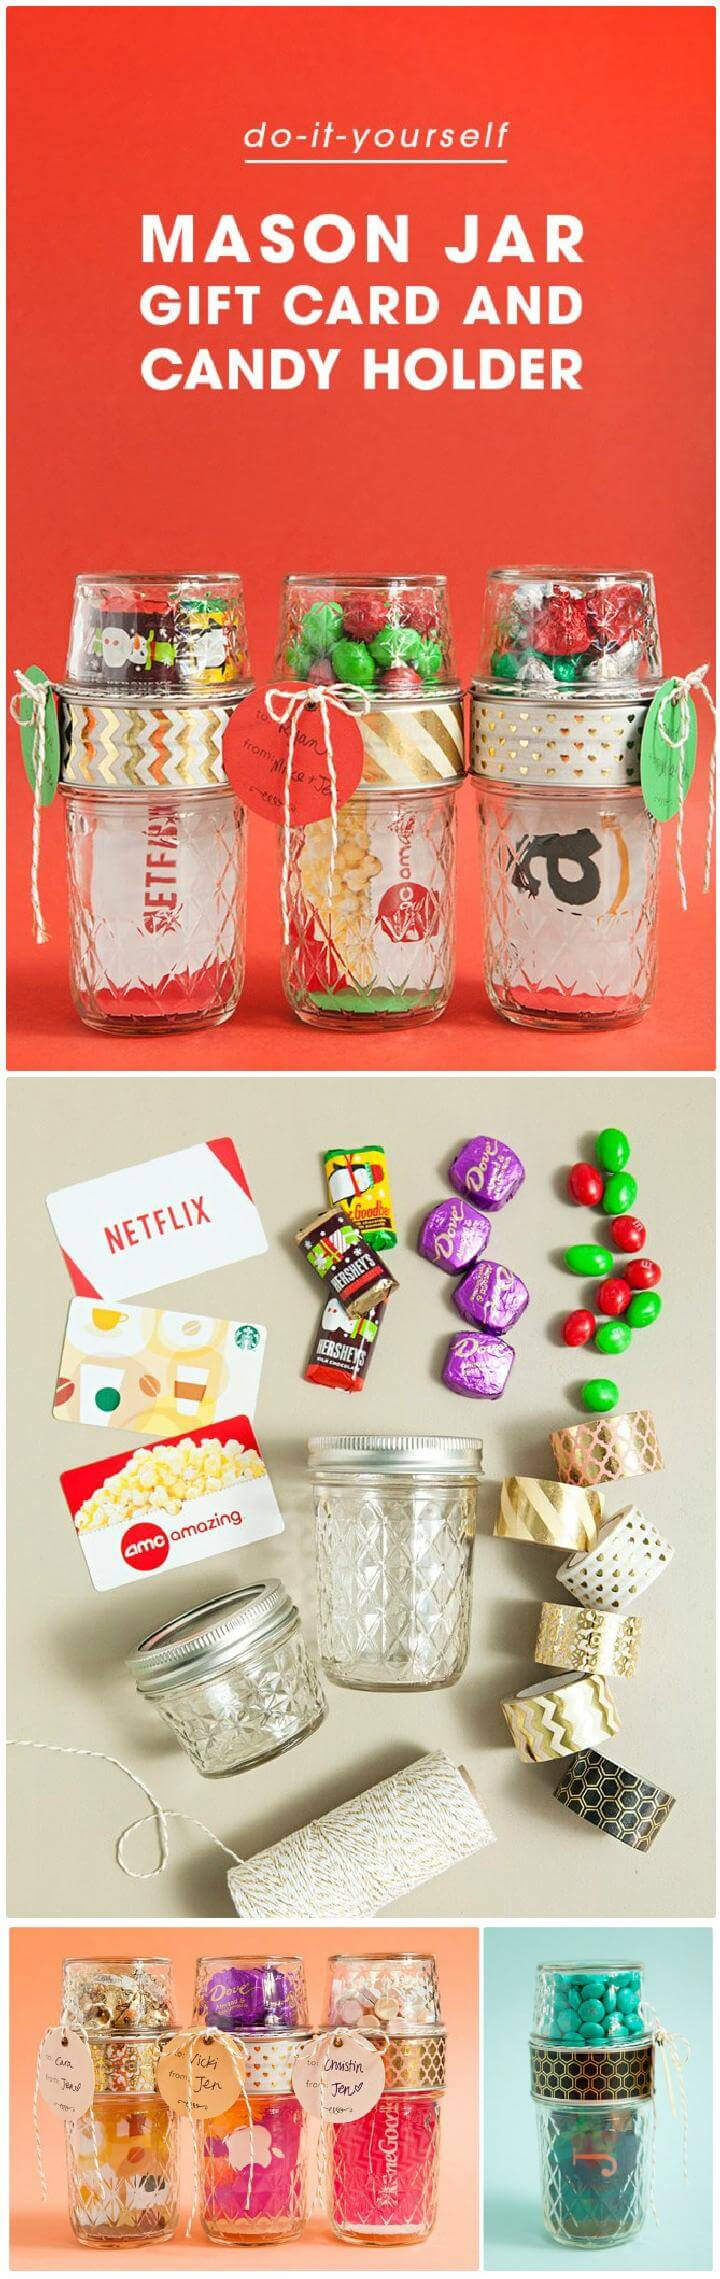 DIY Homemade Mason Jar Gift Card and Candy Holders